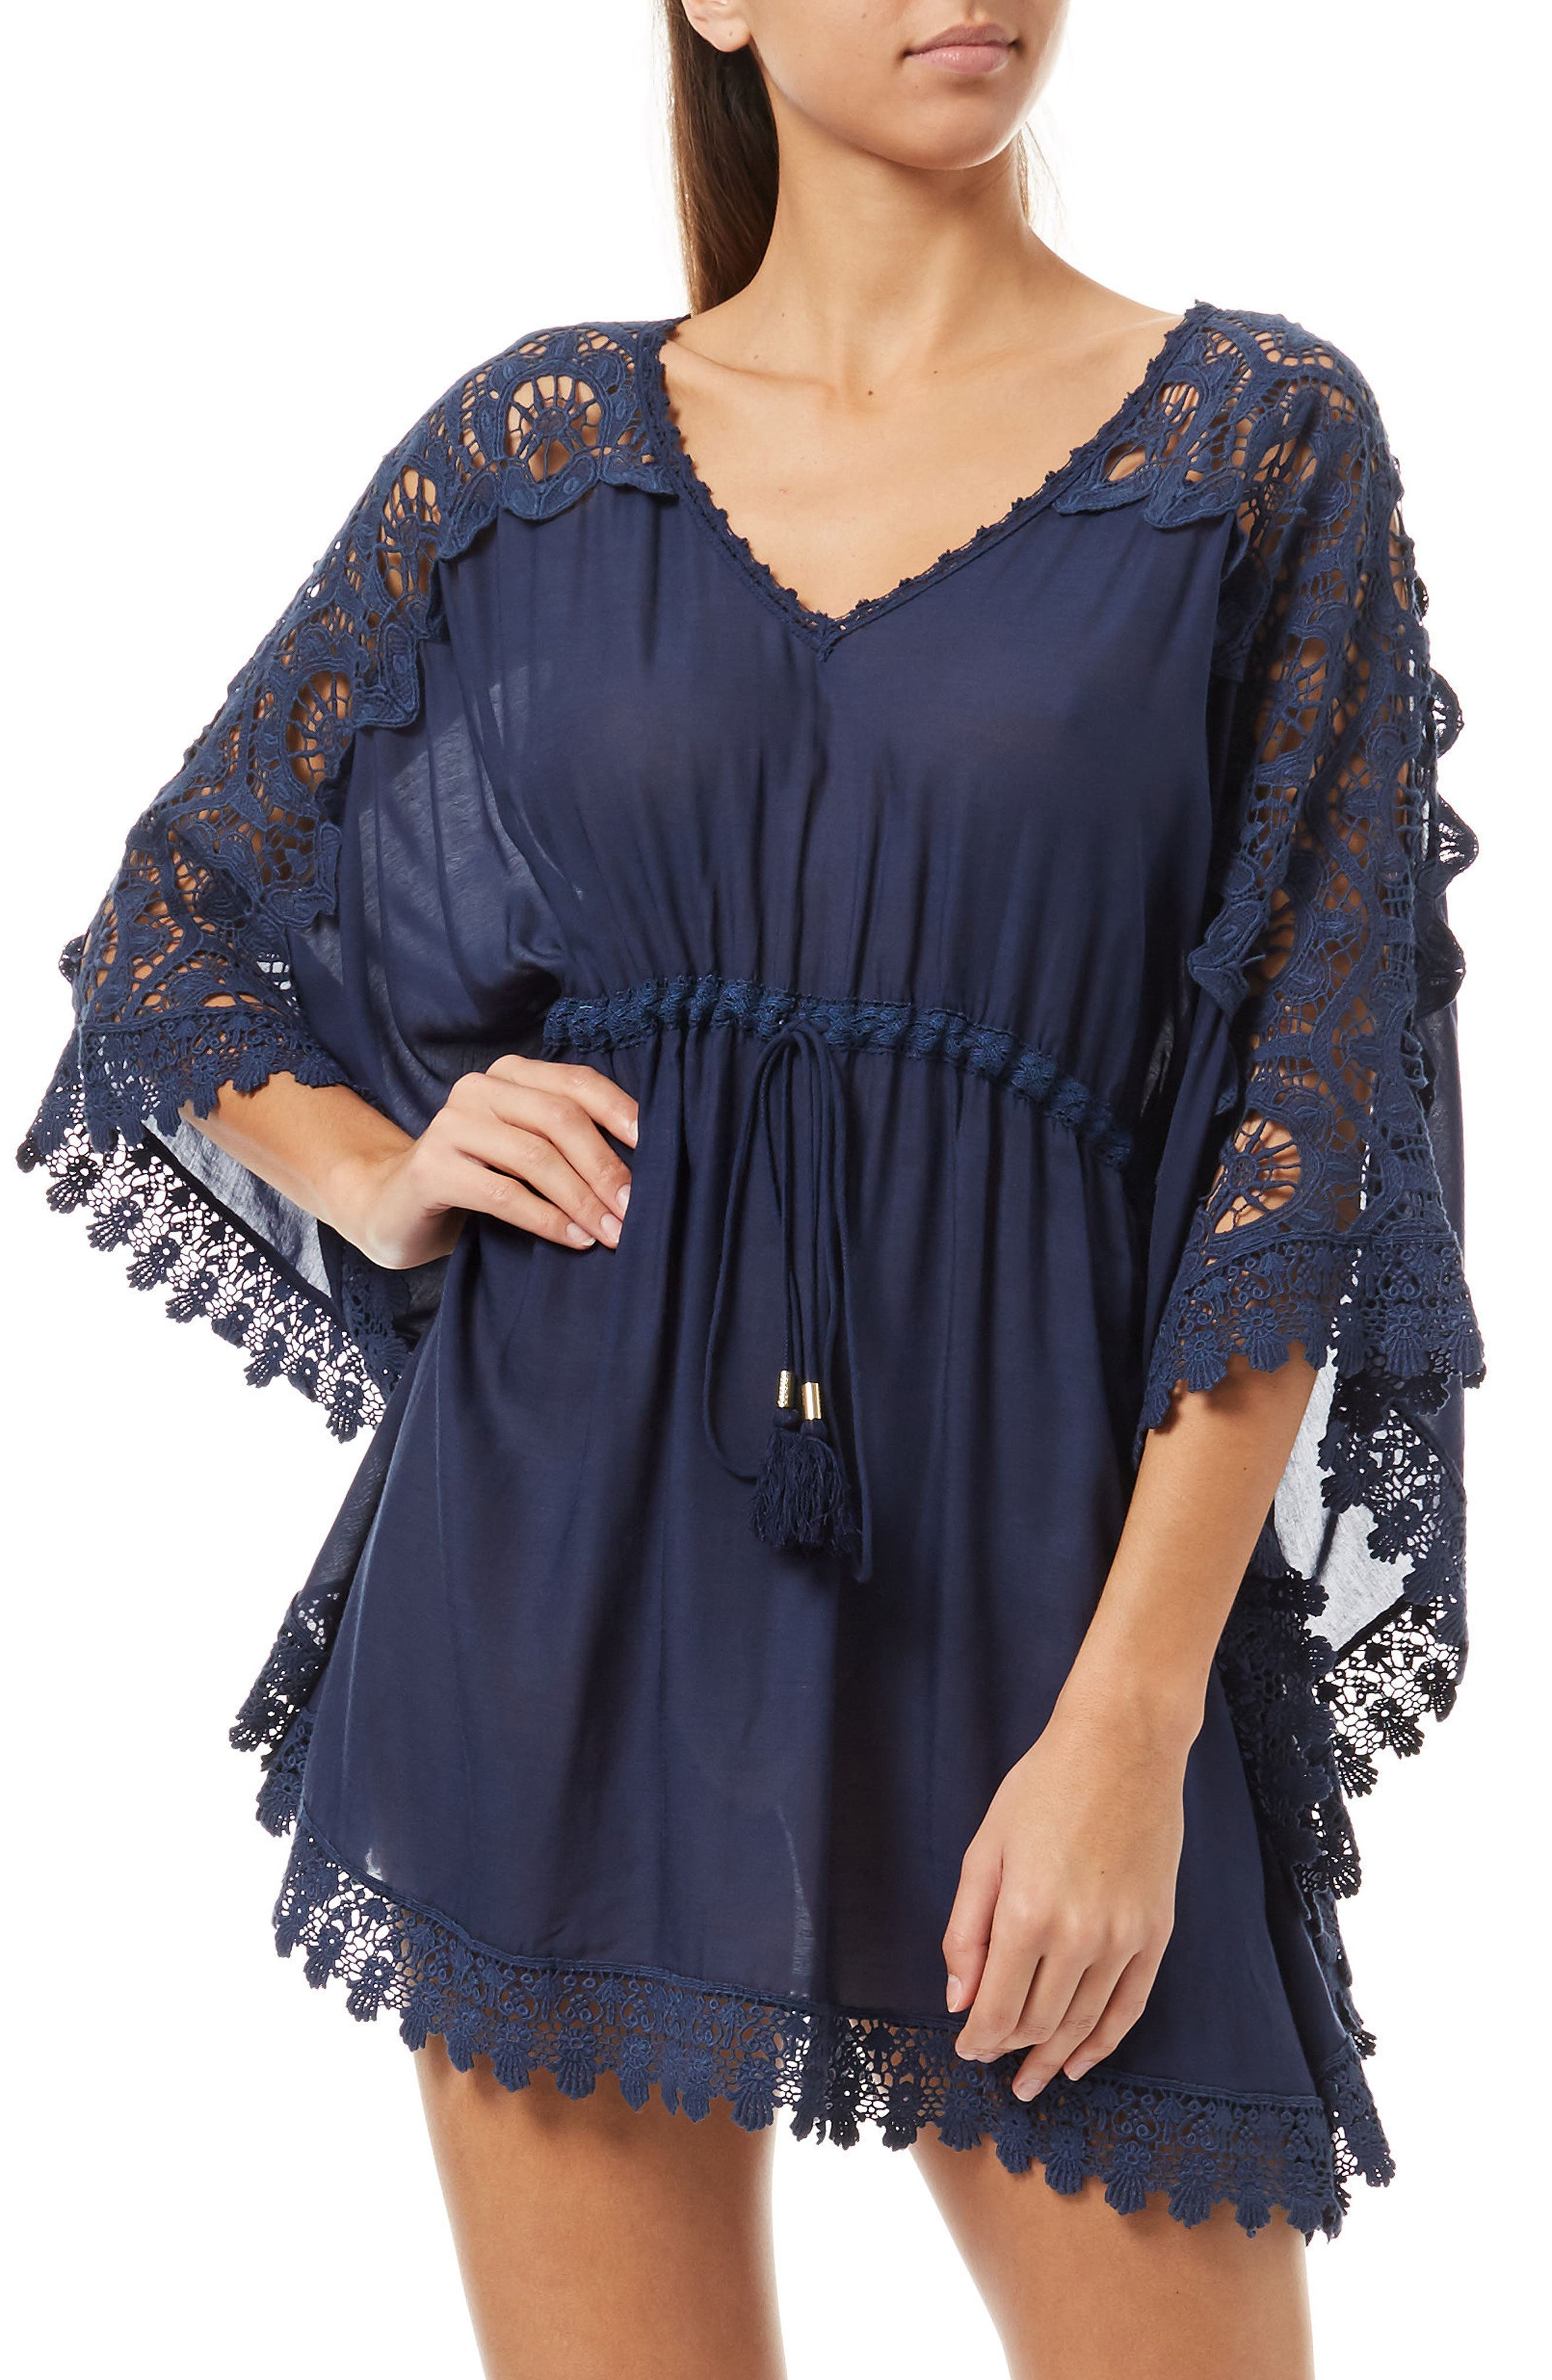 Main Image - Melissa Odabash Roby Cover-Up Dress